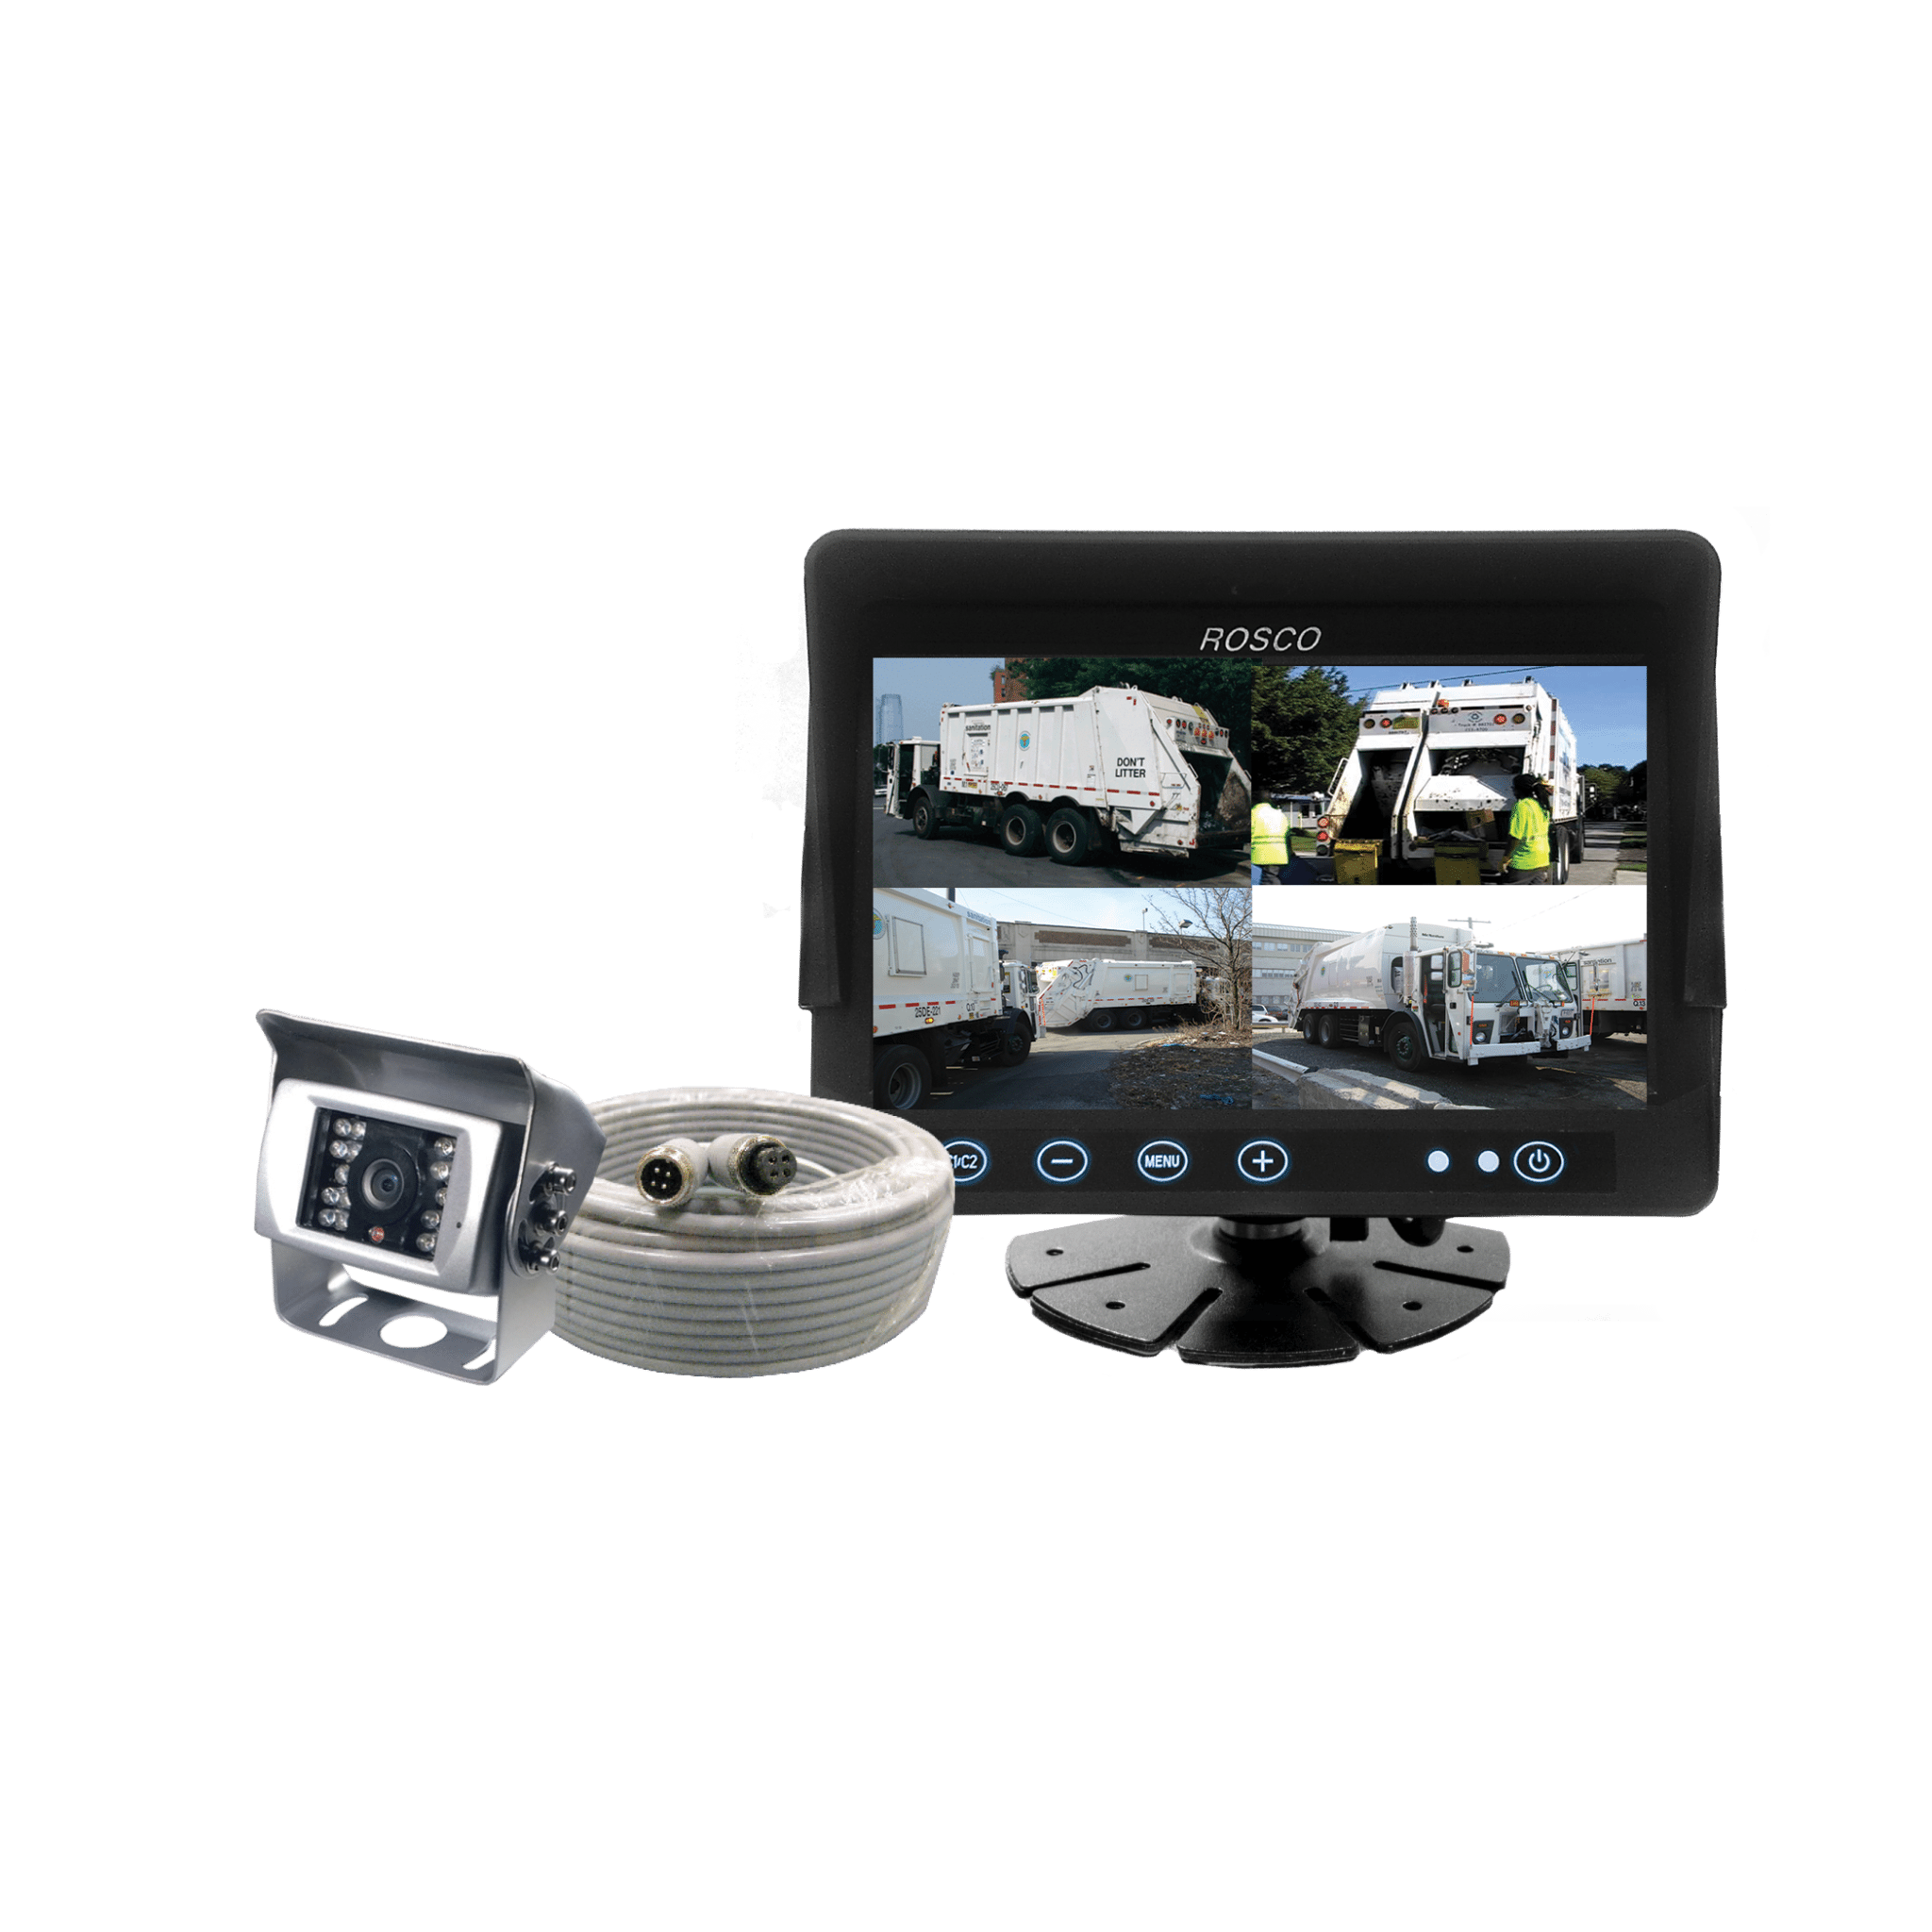 We're dealers and installers of commercial-grade vehicle GPS and camera equipment.